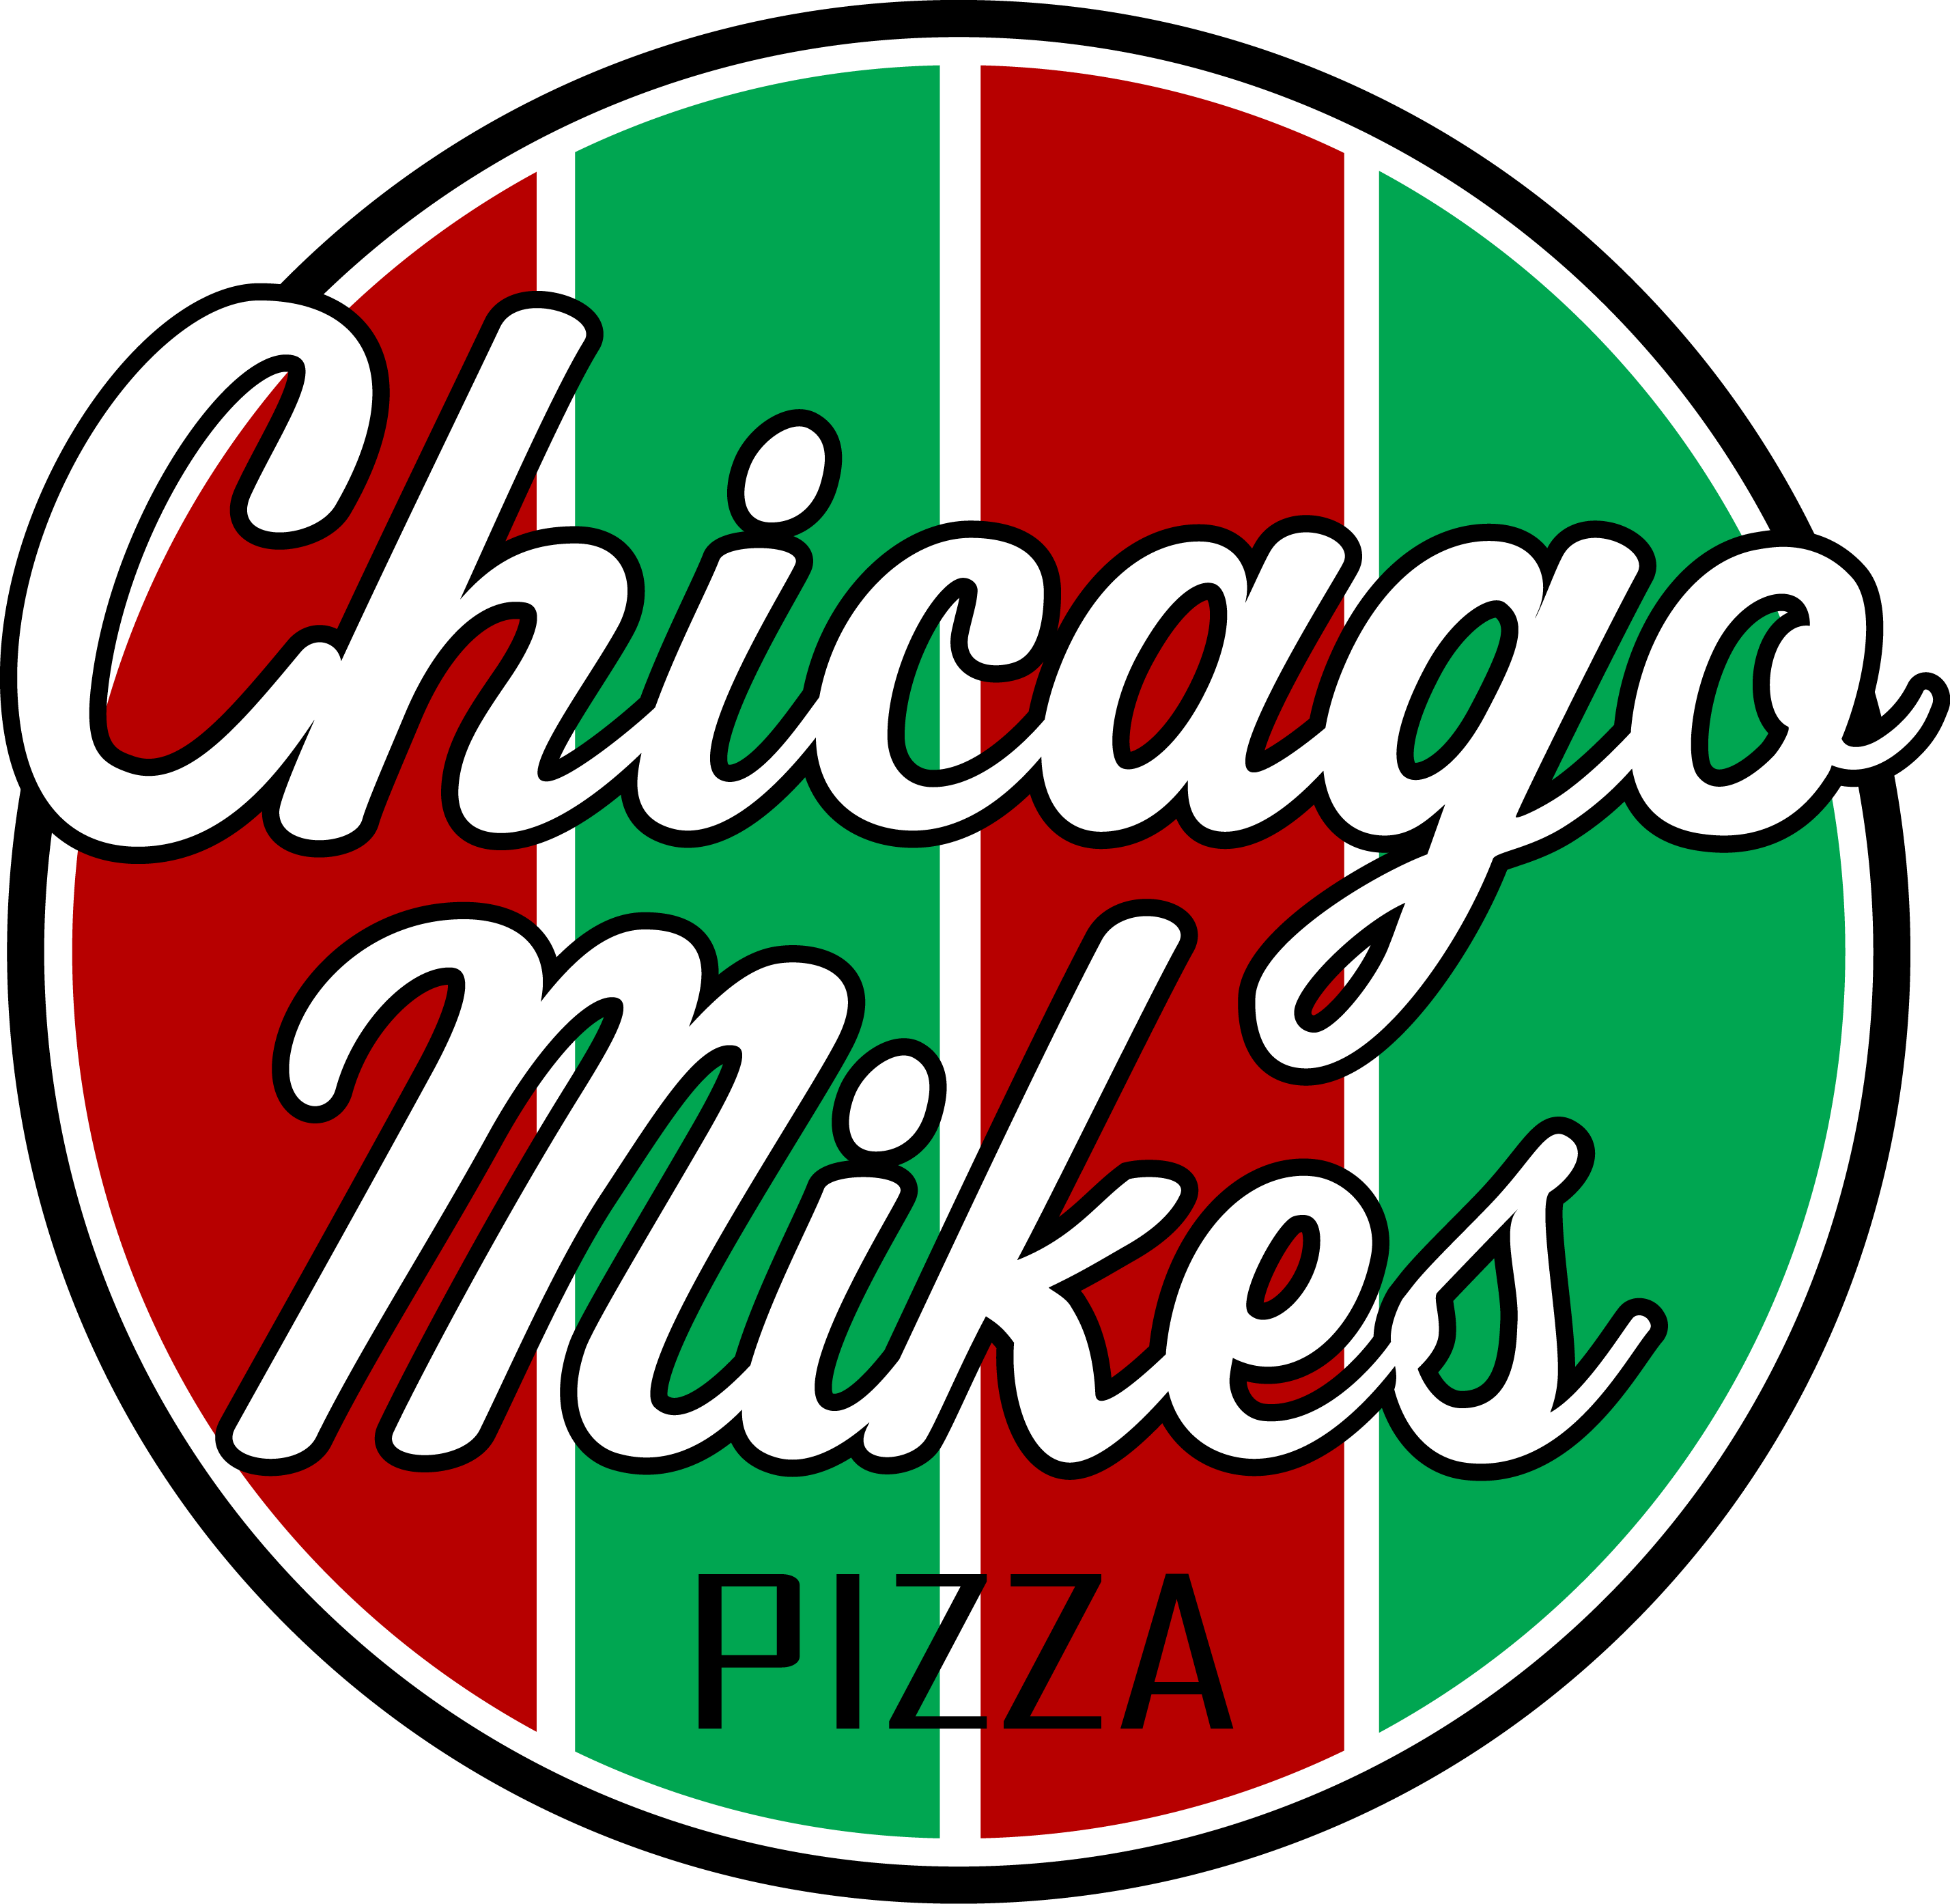 Chicago mikes logo